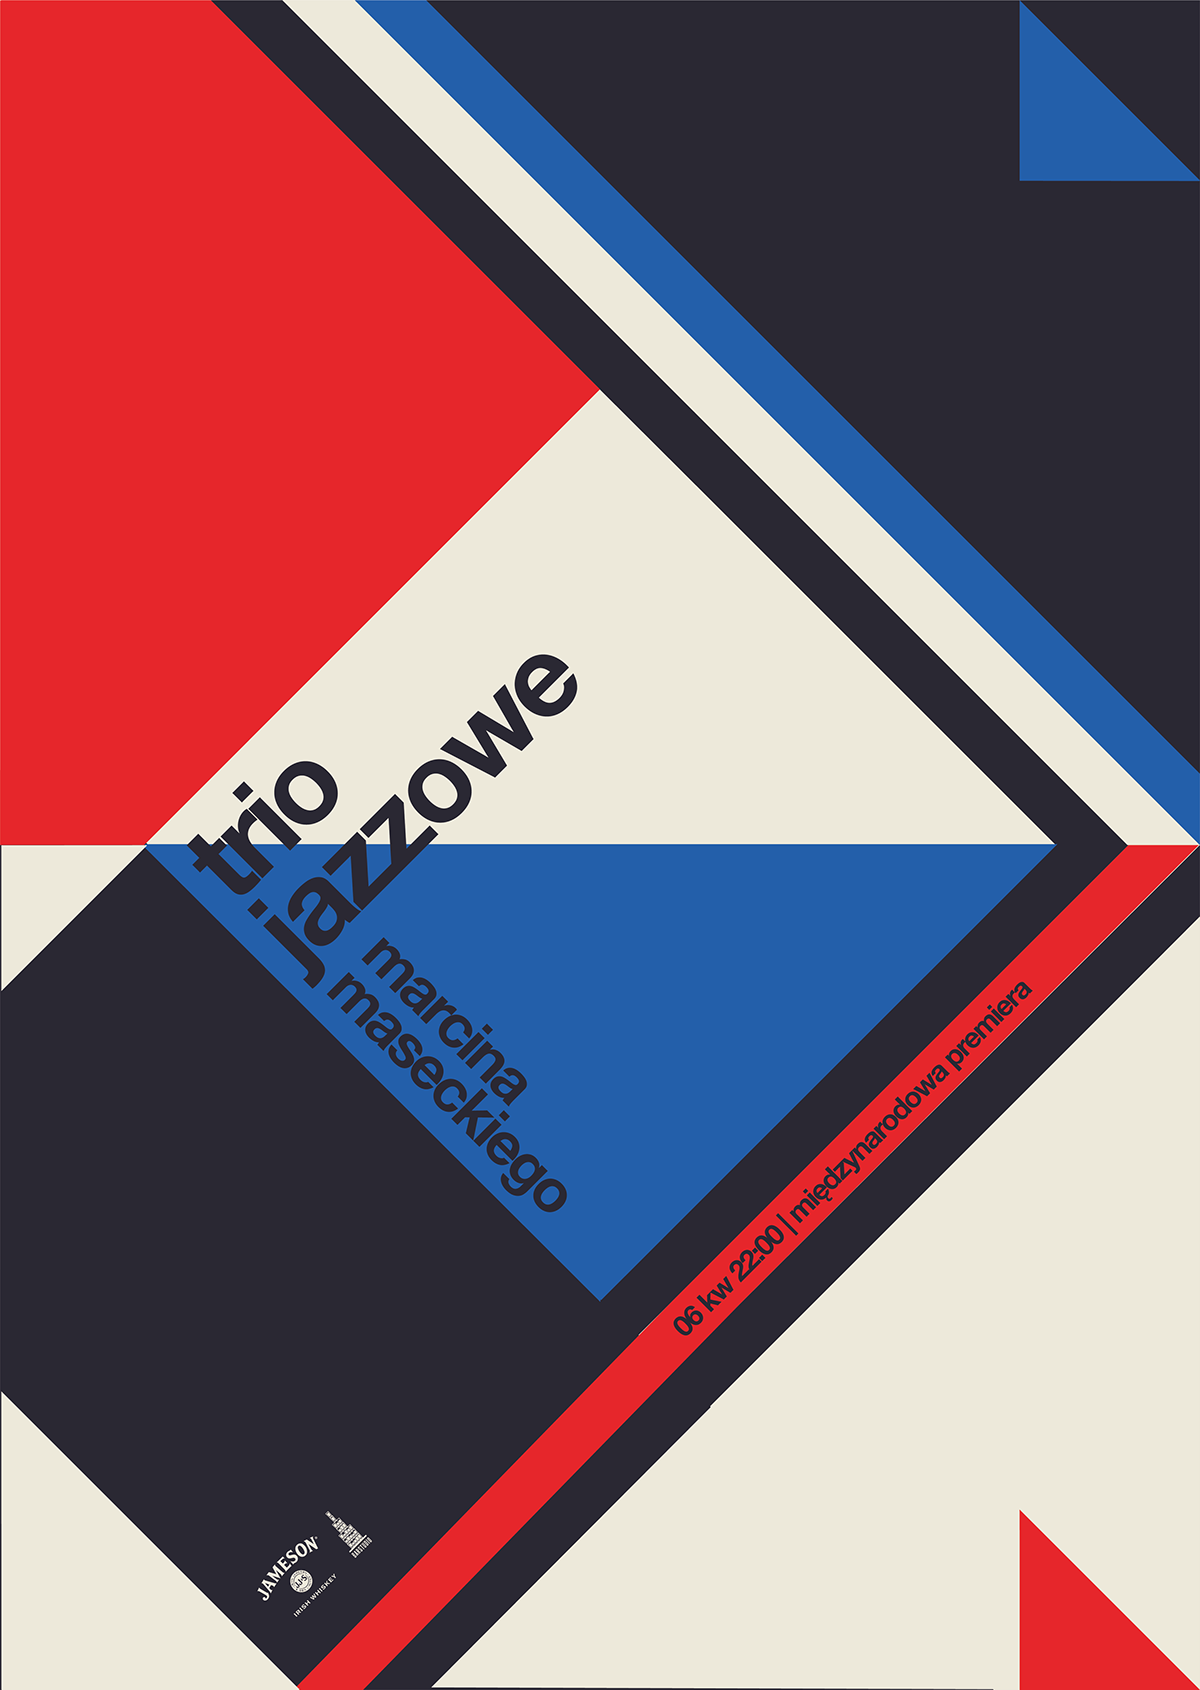 Awesome Poster Design By Ola Jasionowska